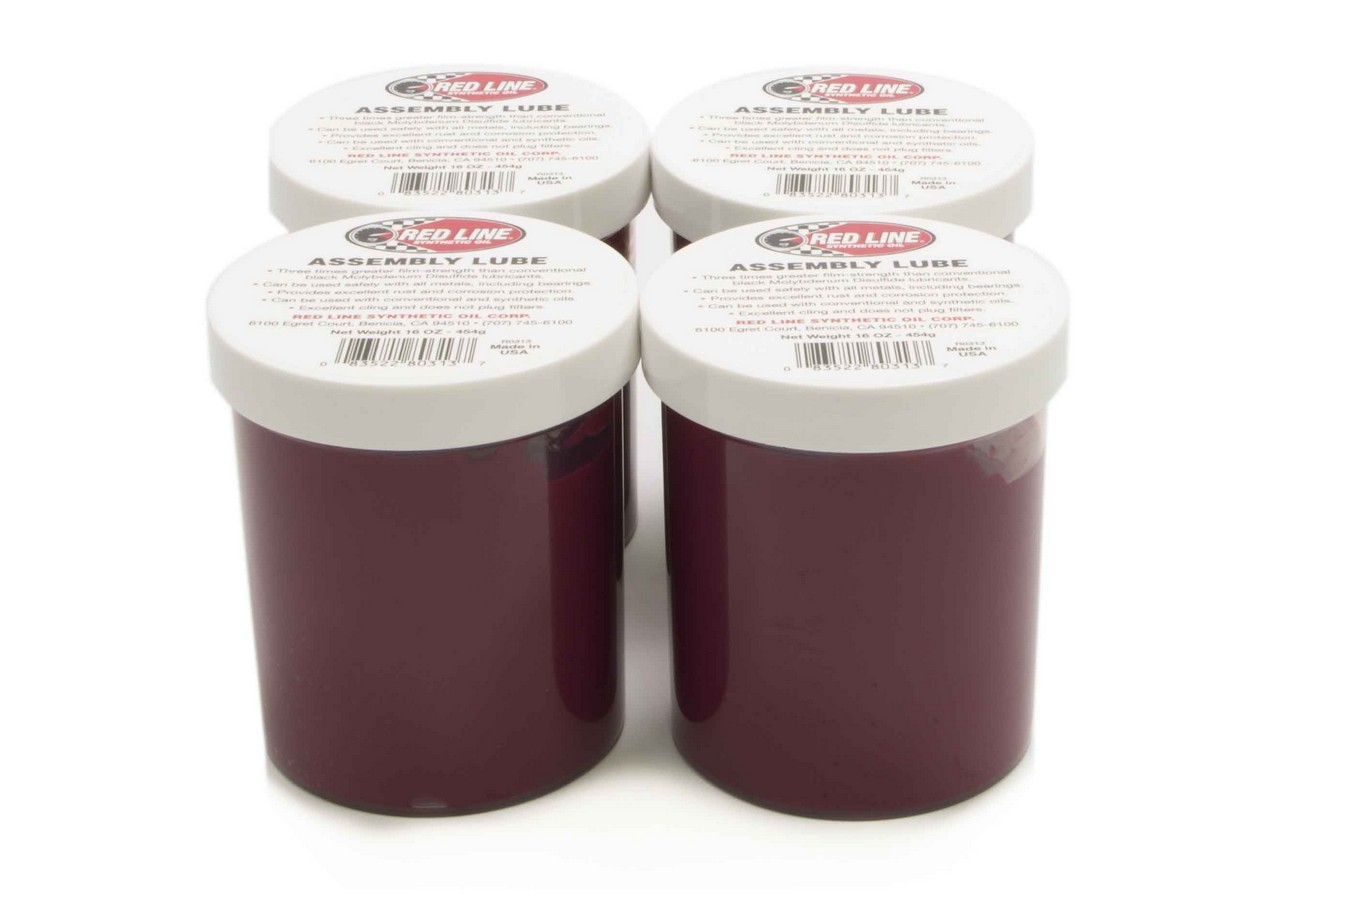 Redline Oil 80323 Assembly Lubricant, Synthetic, 1 lb Tub, Set of 4